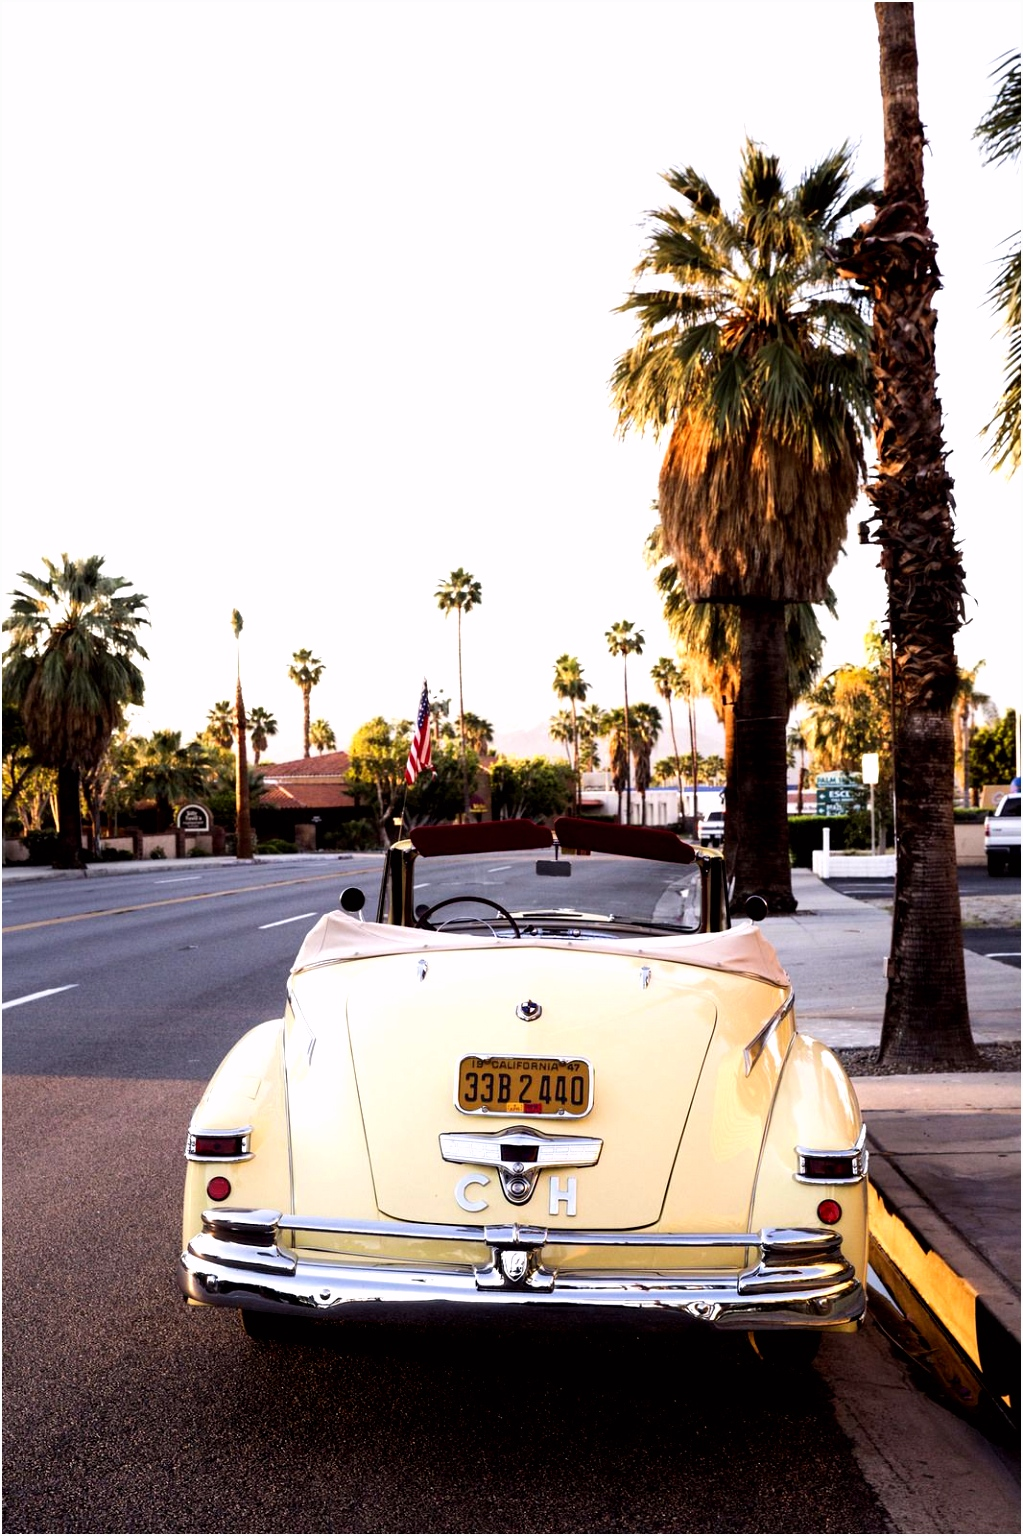 Palm Springs CA explore in 2018 Pinterest